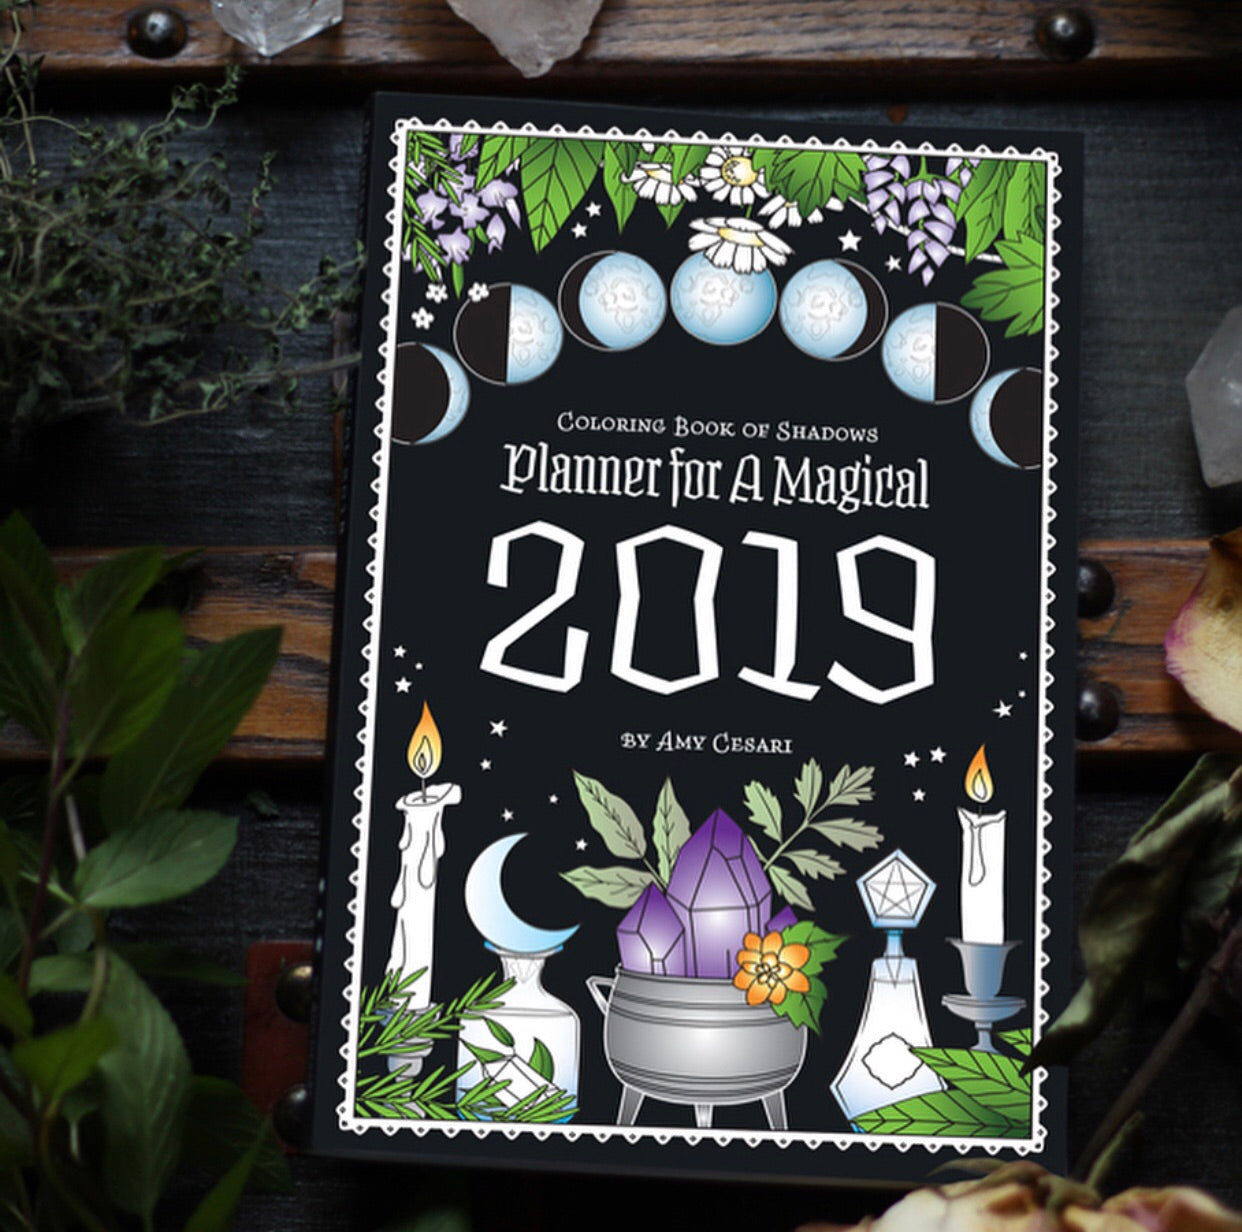 Coloring Book of Shadows 2019 Planner